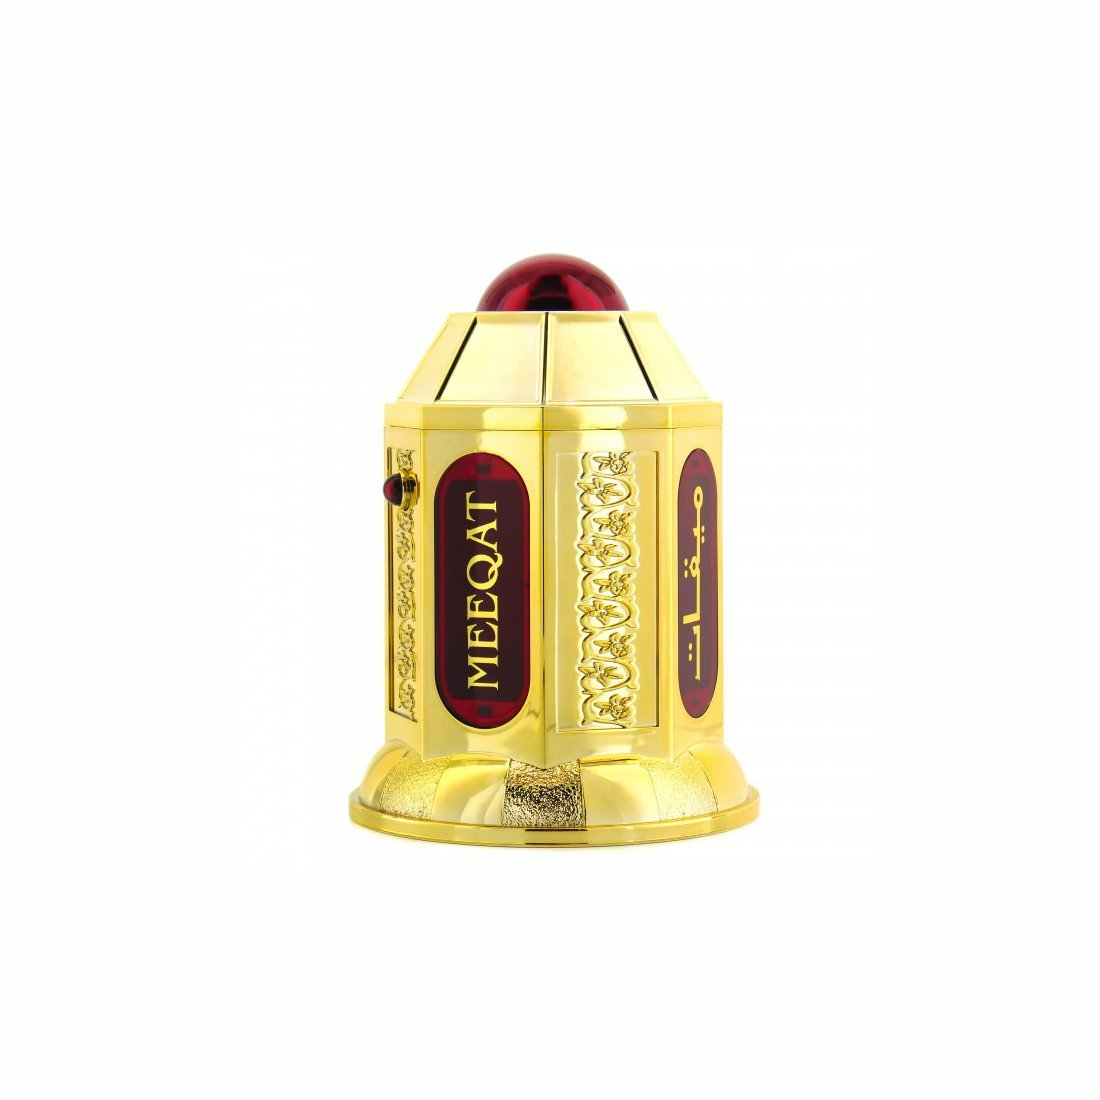 Al Haramain Meeqat Golden Attar 12 ml